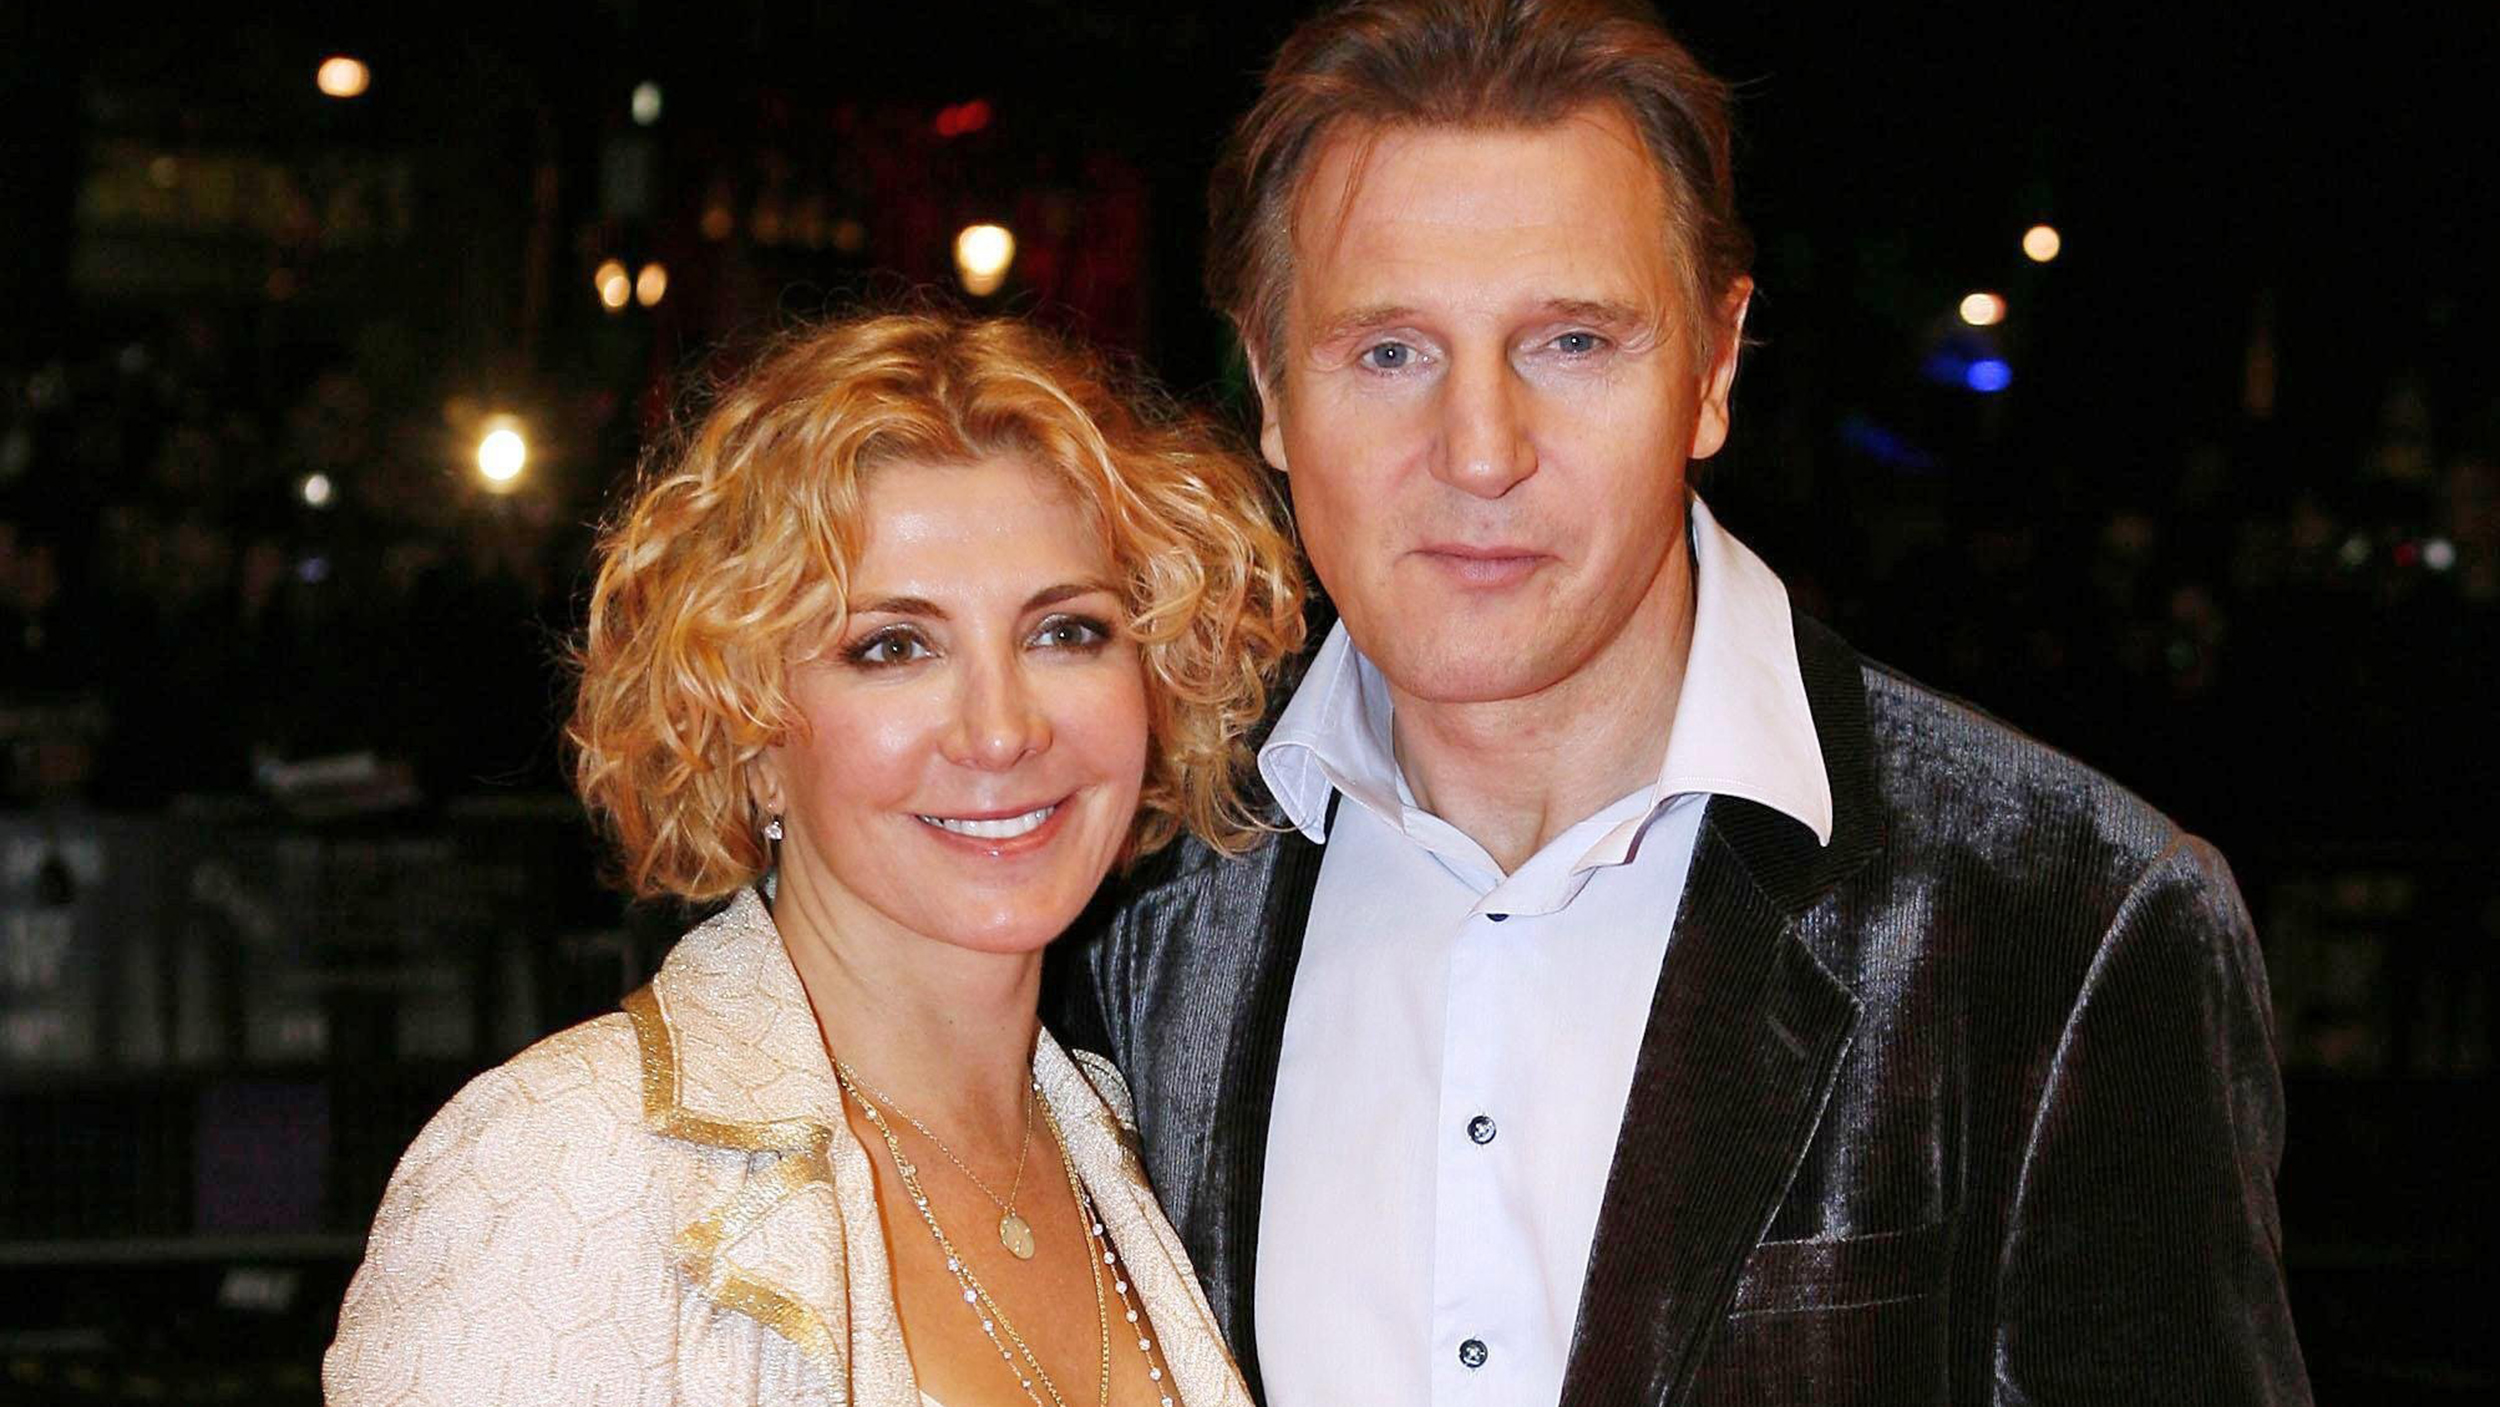 Liam neeson opens up about late wife natasha richardson 39 s for Natasha richardson and liam neeson